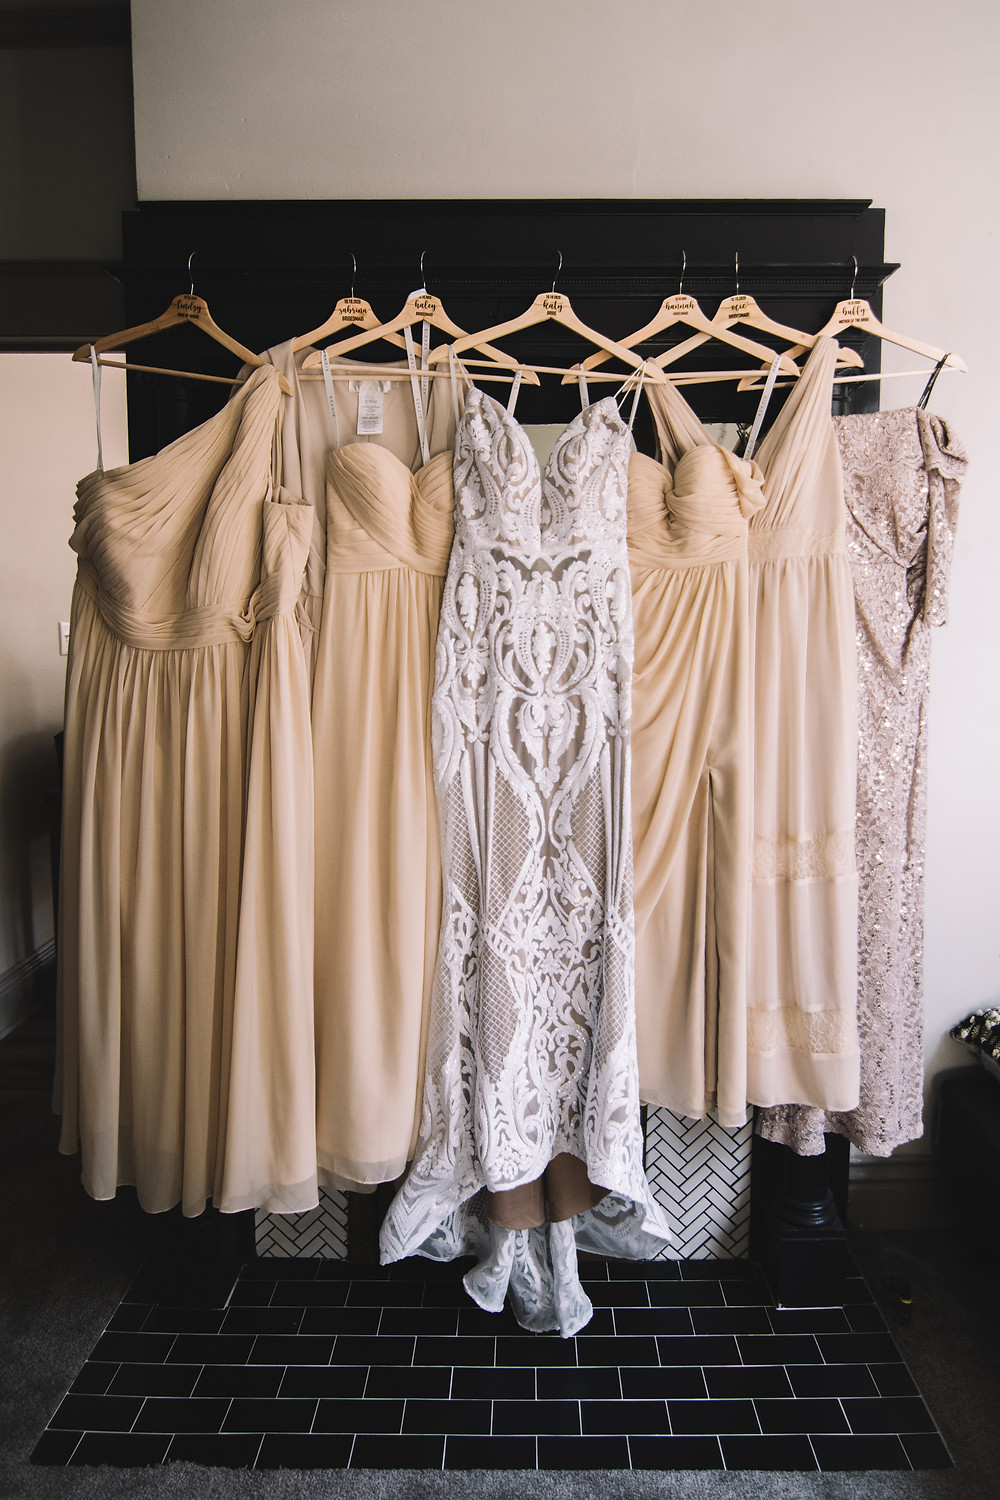 springfield, il, illinois, chatham, rochestor, sherman, capital of illinois, central il, illinois wedding photographer, springfield wedding, springfield wedding photographer, covid wedding, fall wedding, dress with bridesmaid dresses, dresses hung up, bride and bridesmaids, wedding hangers